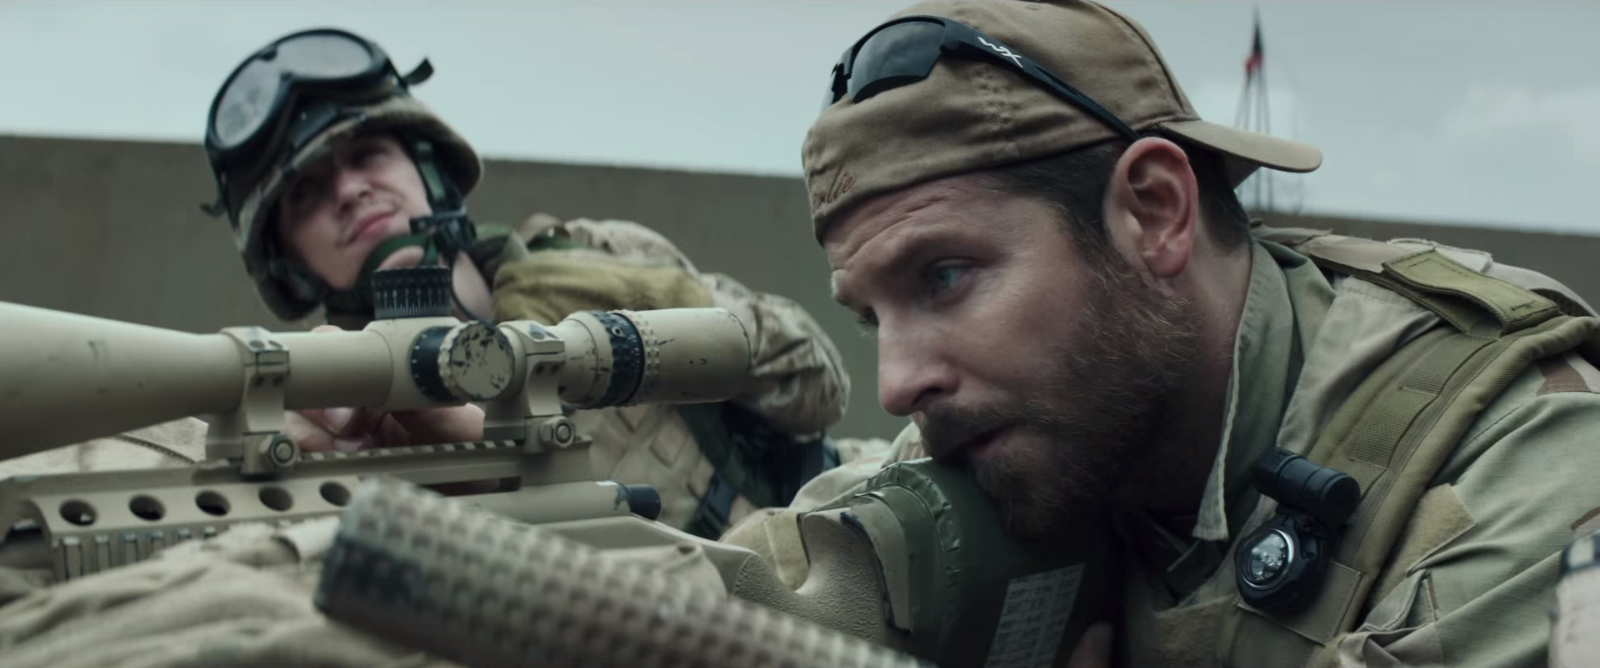 Wiley X sunglasses in American Sniper